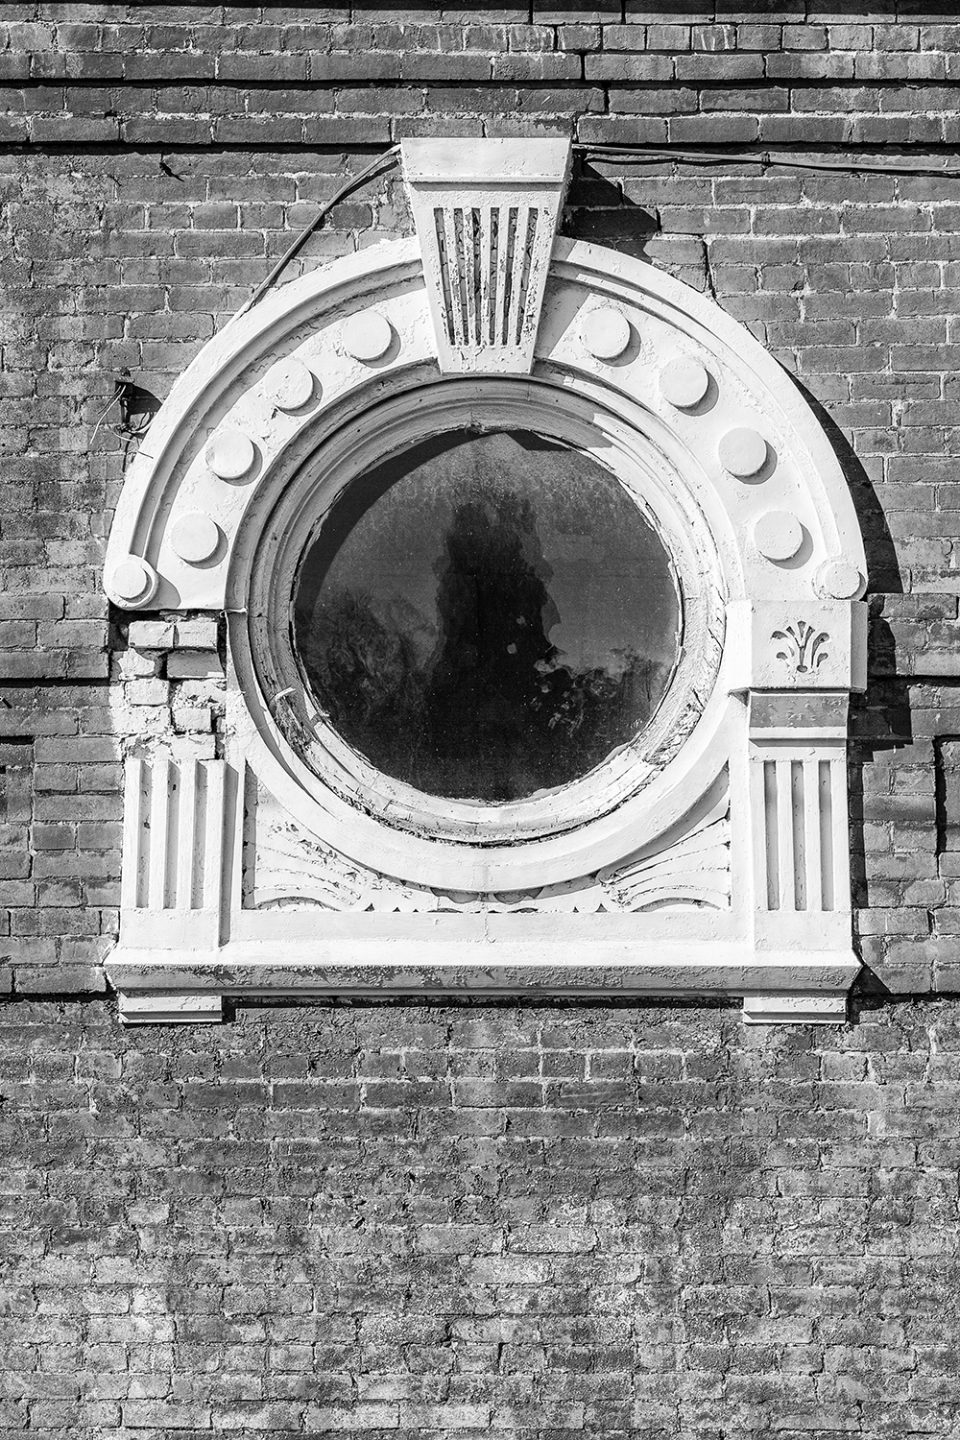 A porthole style window on a large building now demolished. Black and white photograph by Keith Dotson.